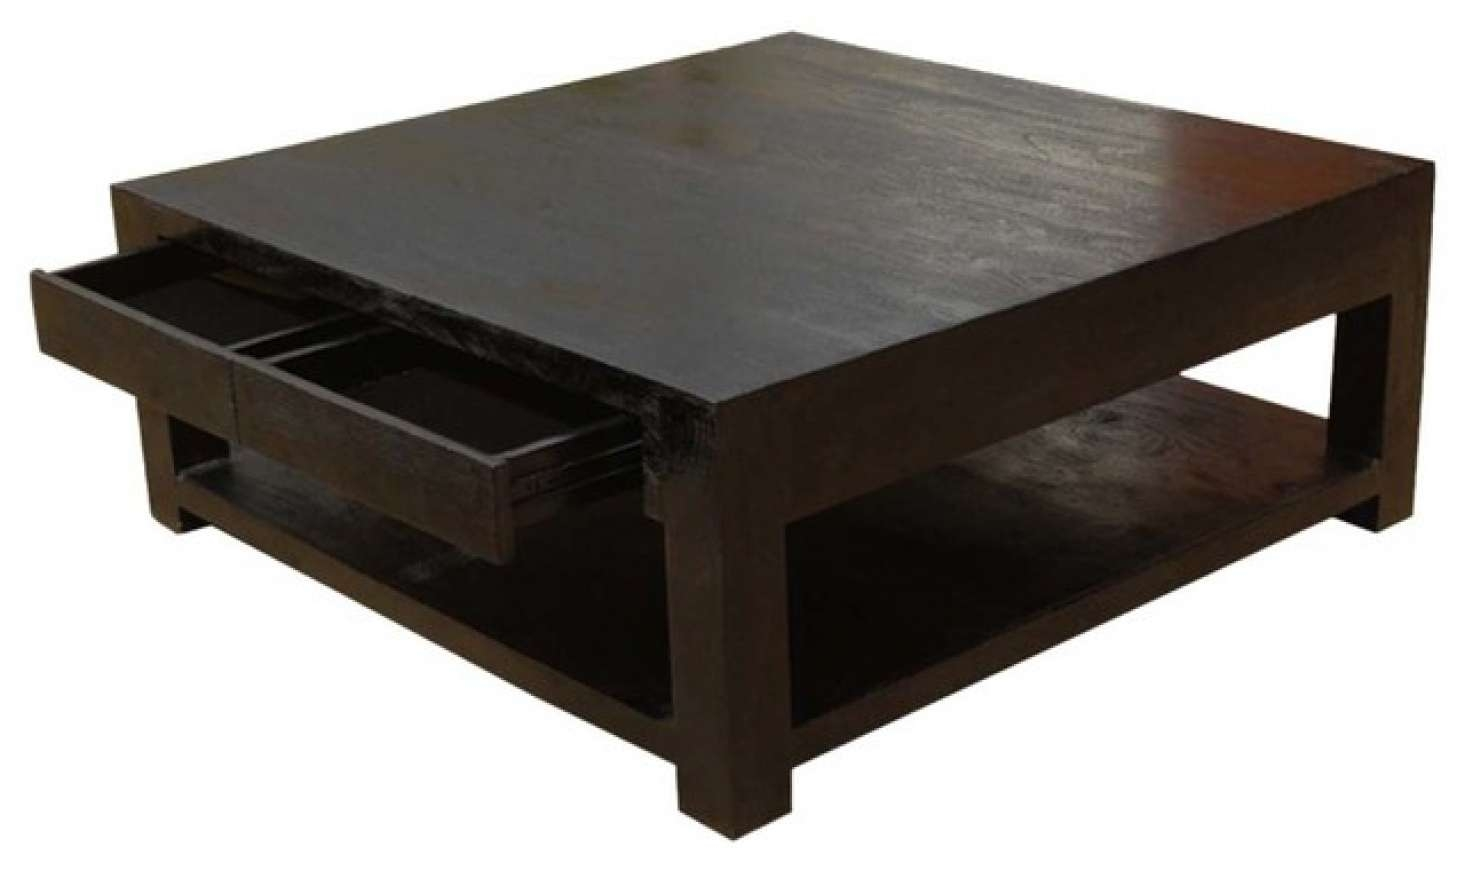 Perfect Oversized Square Coffee Tables 55 On Interior Designing For Trendy Square Coffee Tables (View 7 of 20)